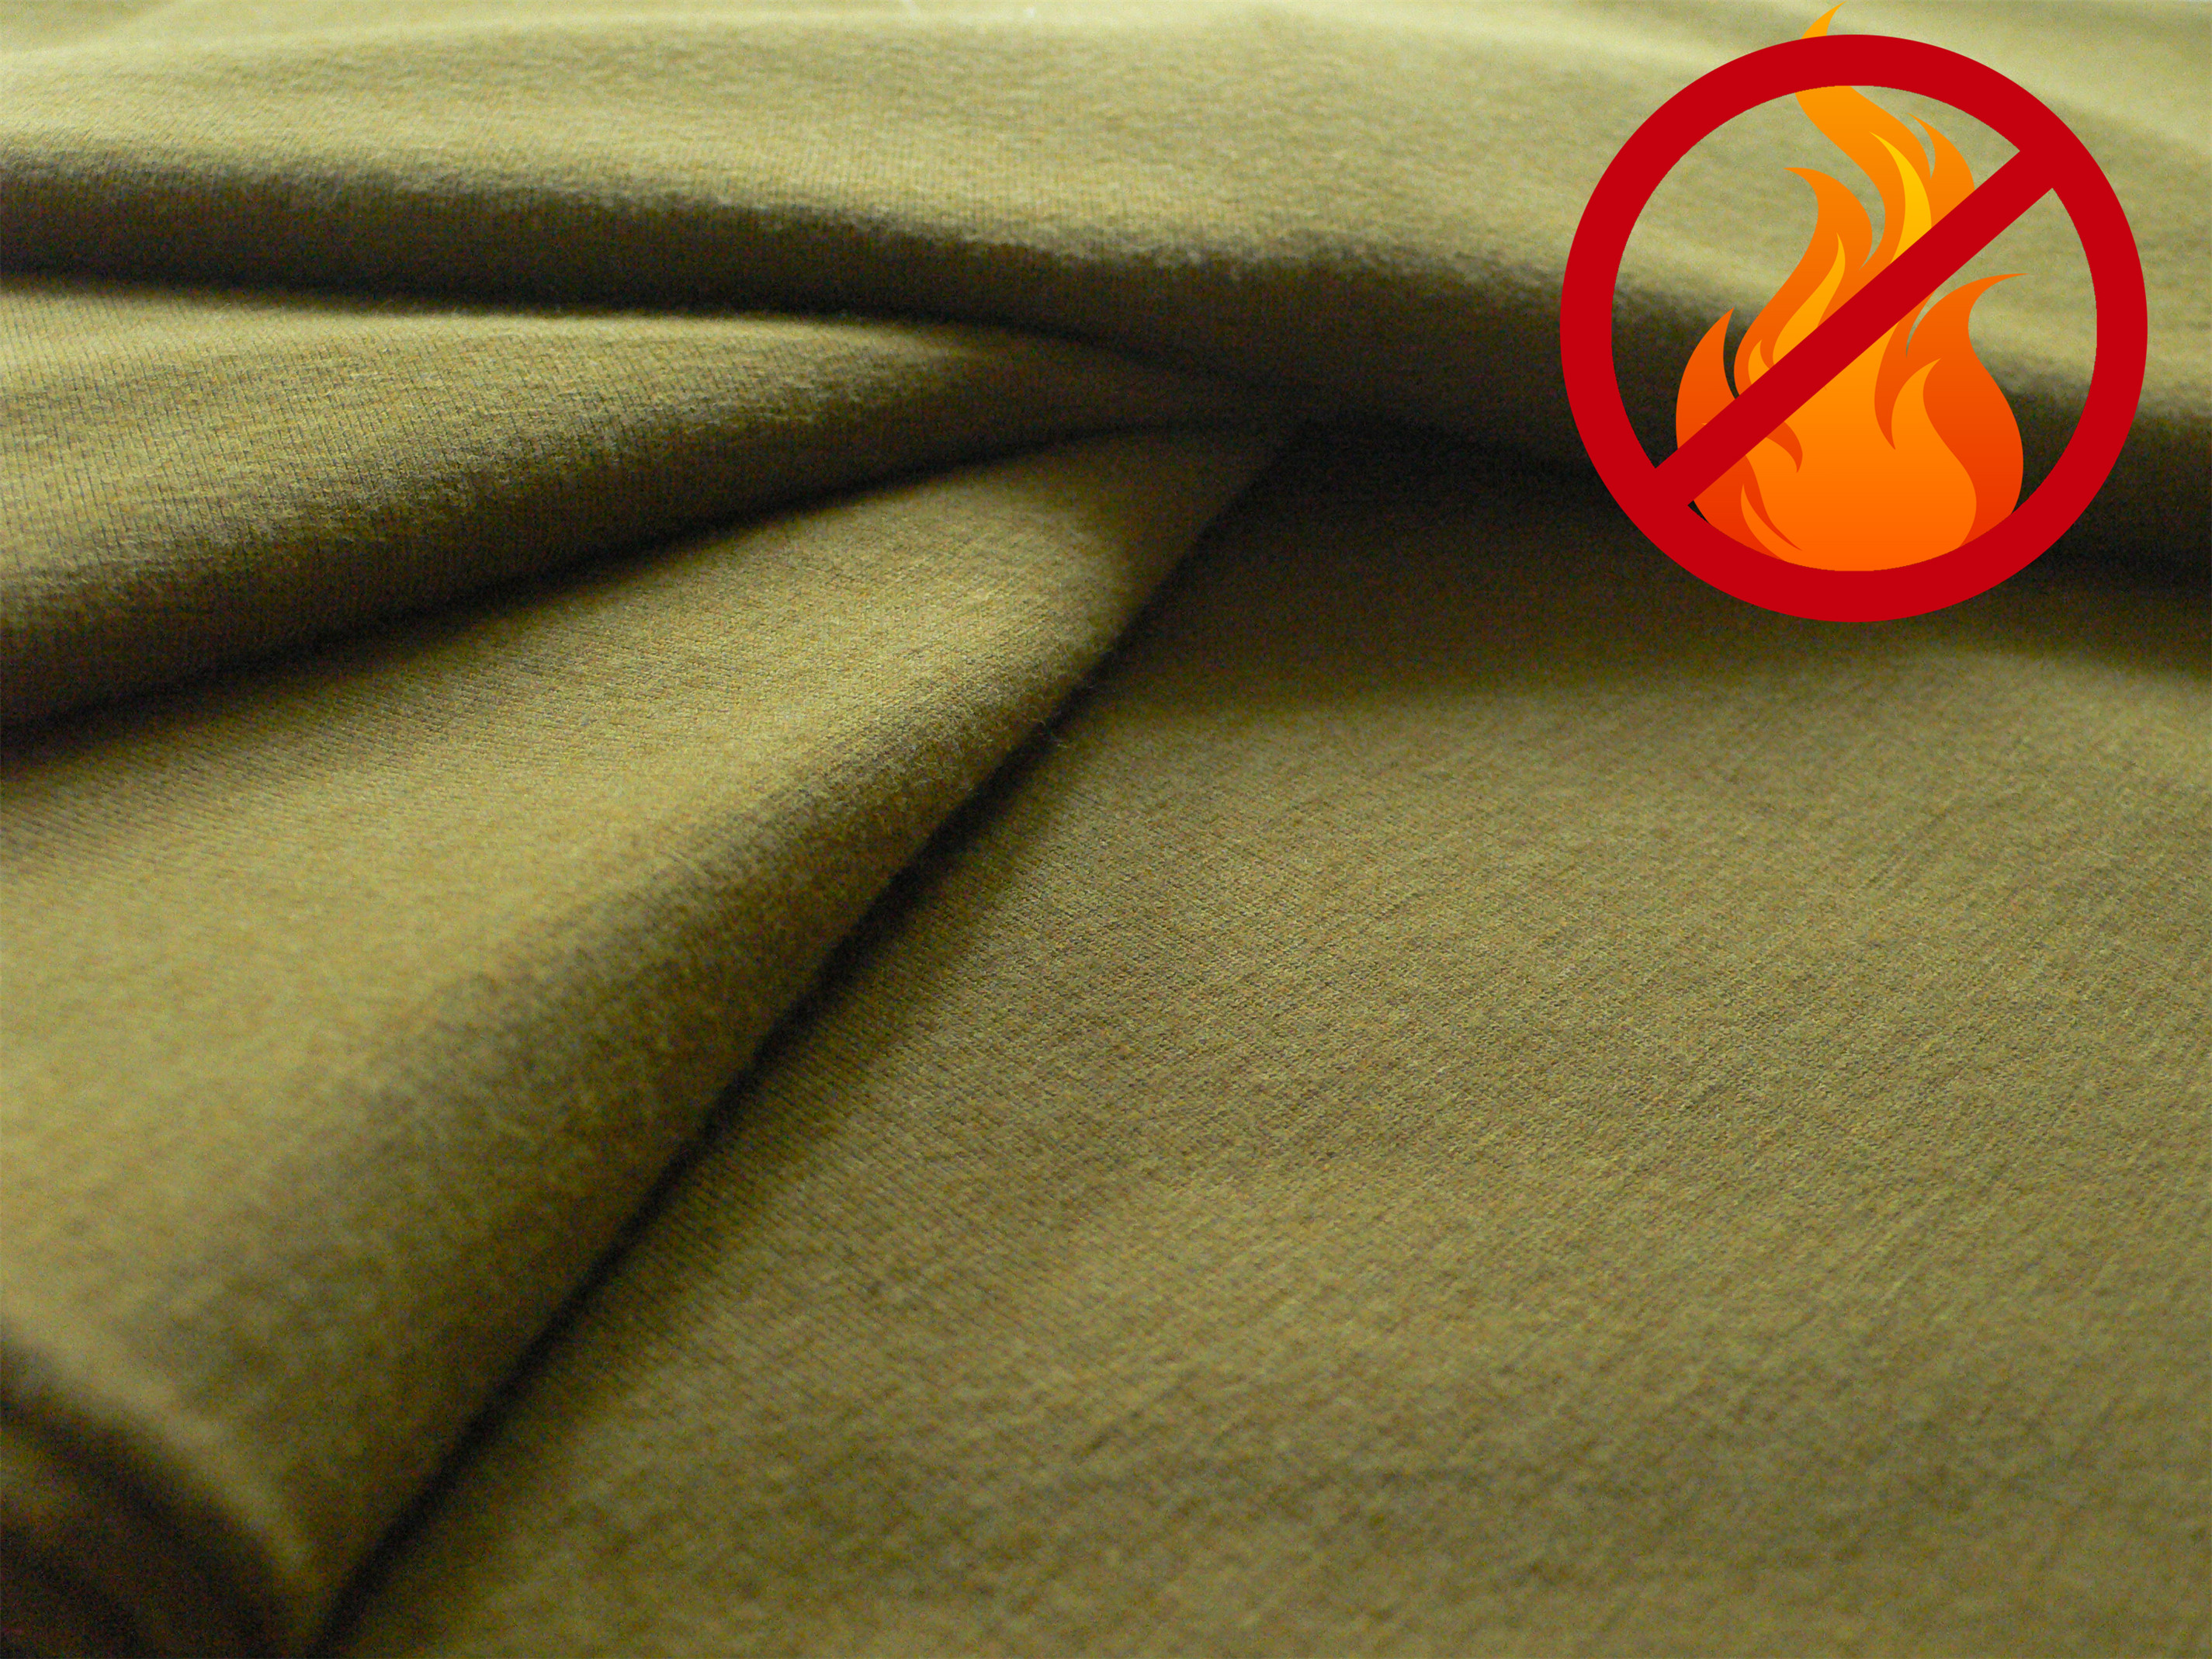 Fire-Retardant Knitting Modacrylic and FR Viscose Fabric for Underwear